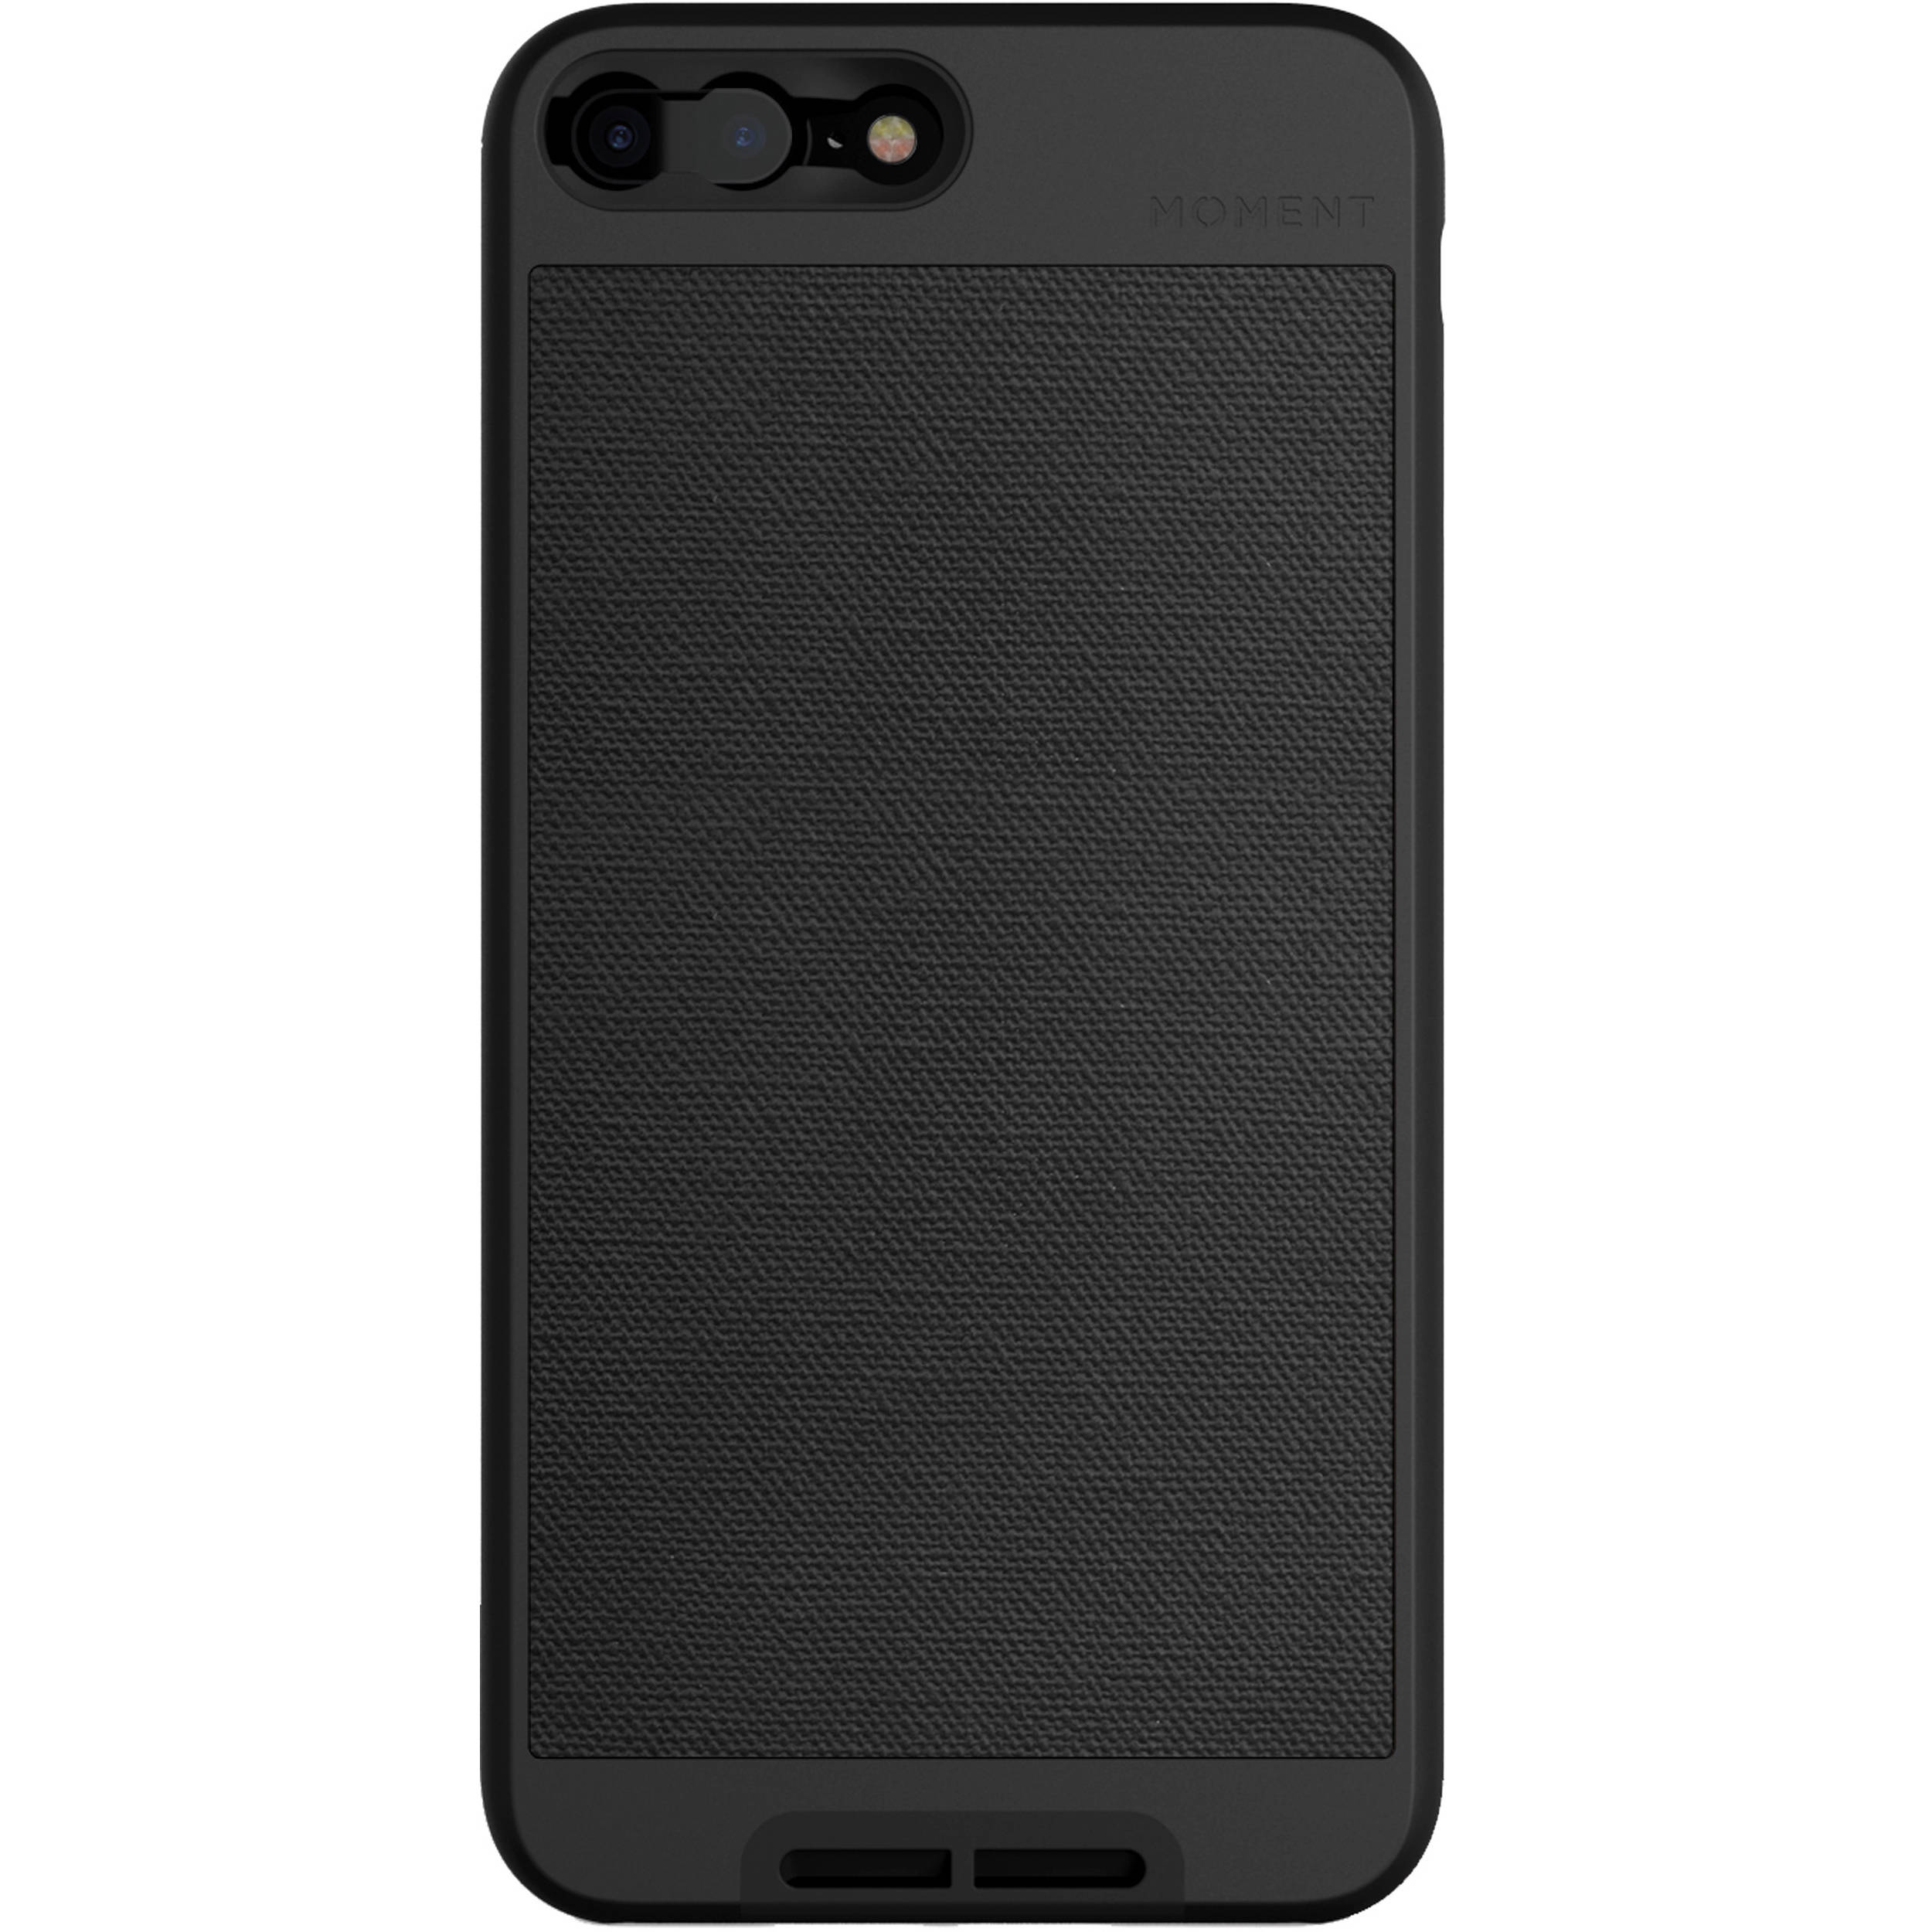 Moment Photo Case for iPhone 7 Plus 8 Plus (Black Canvas) 65b37c9ea